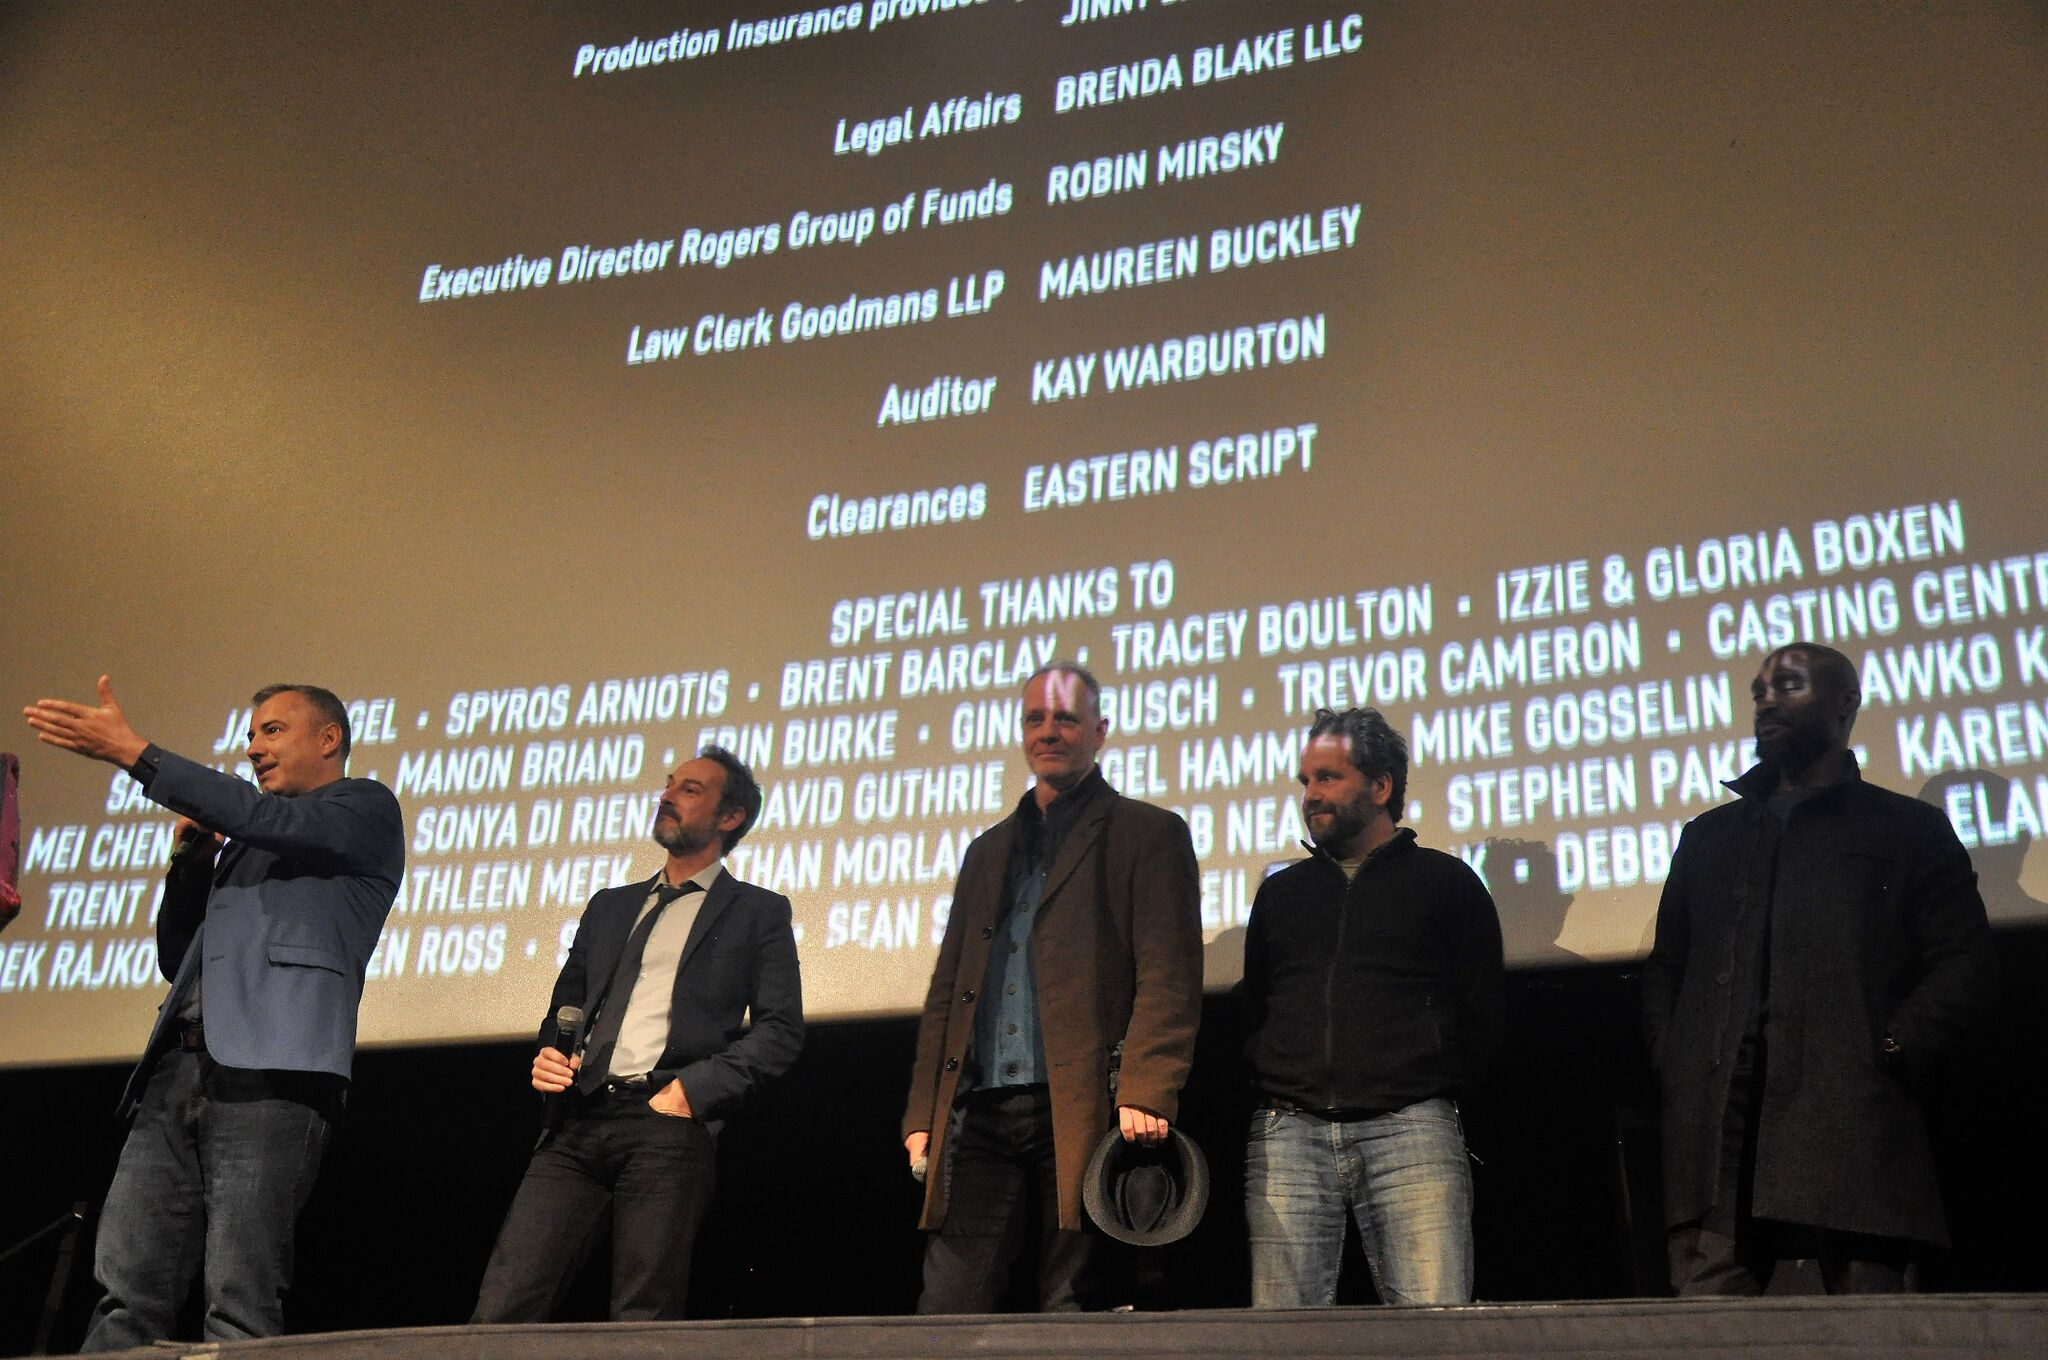 22 Chaser Director Rafal Sokolowski and Screenplay writer Jeremy Boxen alongside other Cast & Crew Members